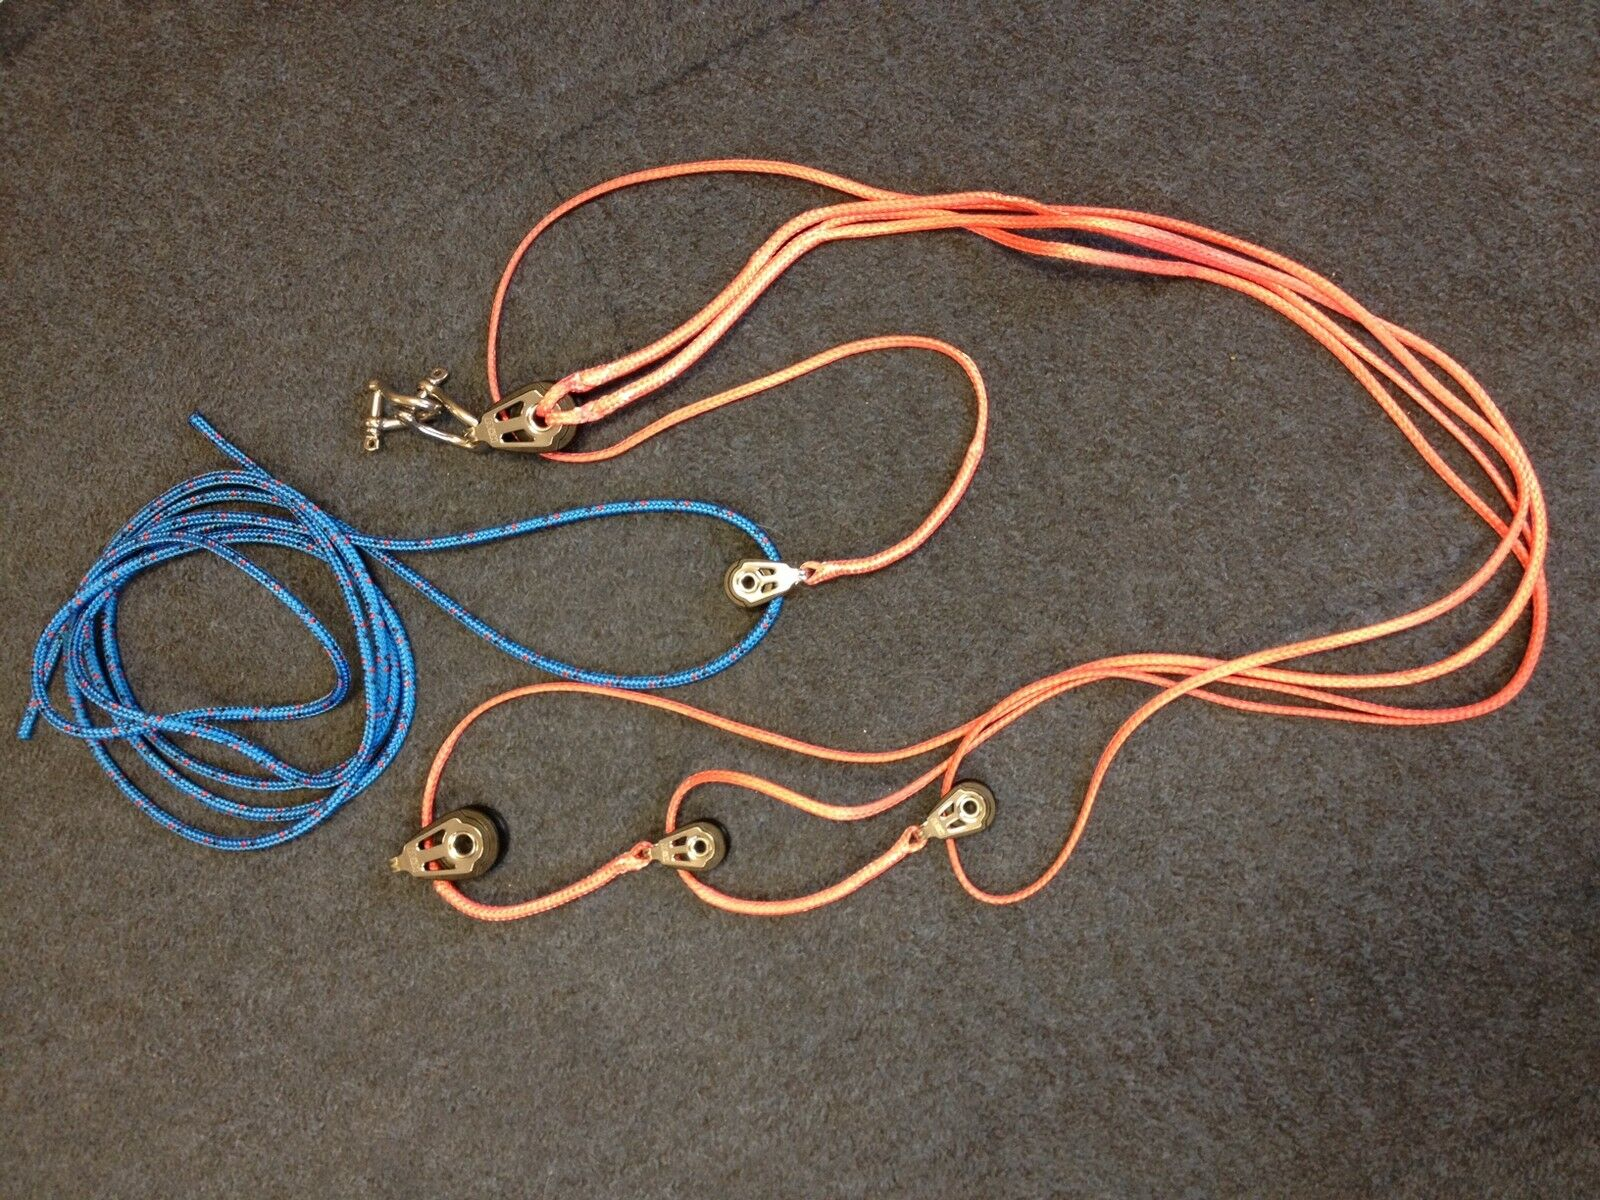 Holt Complete 420 Race Vang Assembly With Rope   HT7503